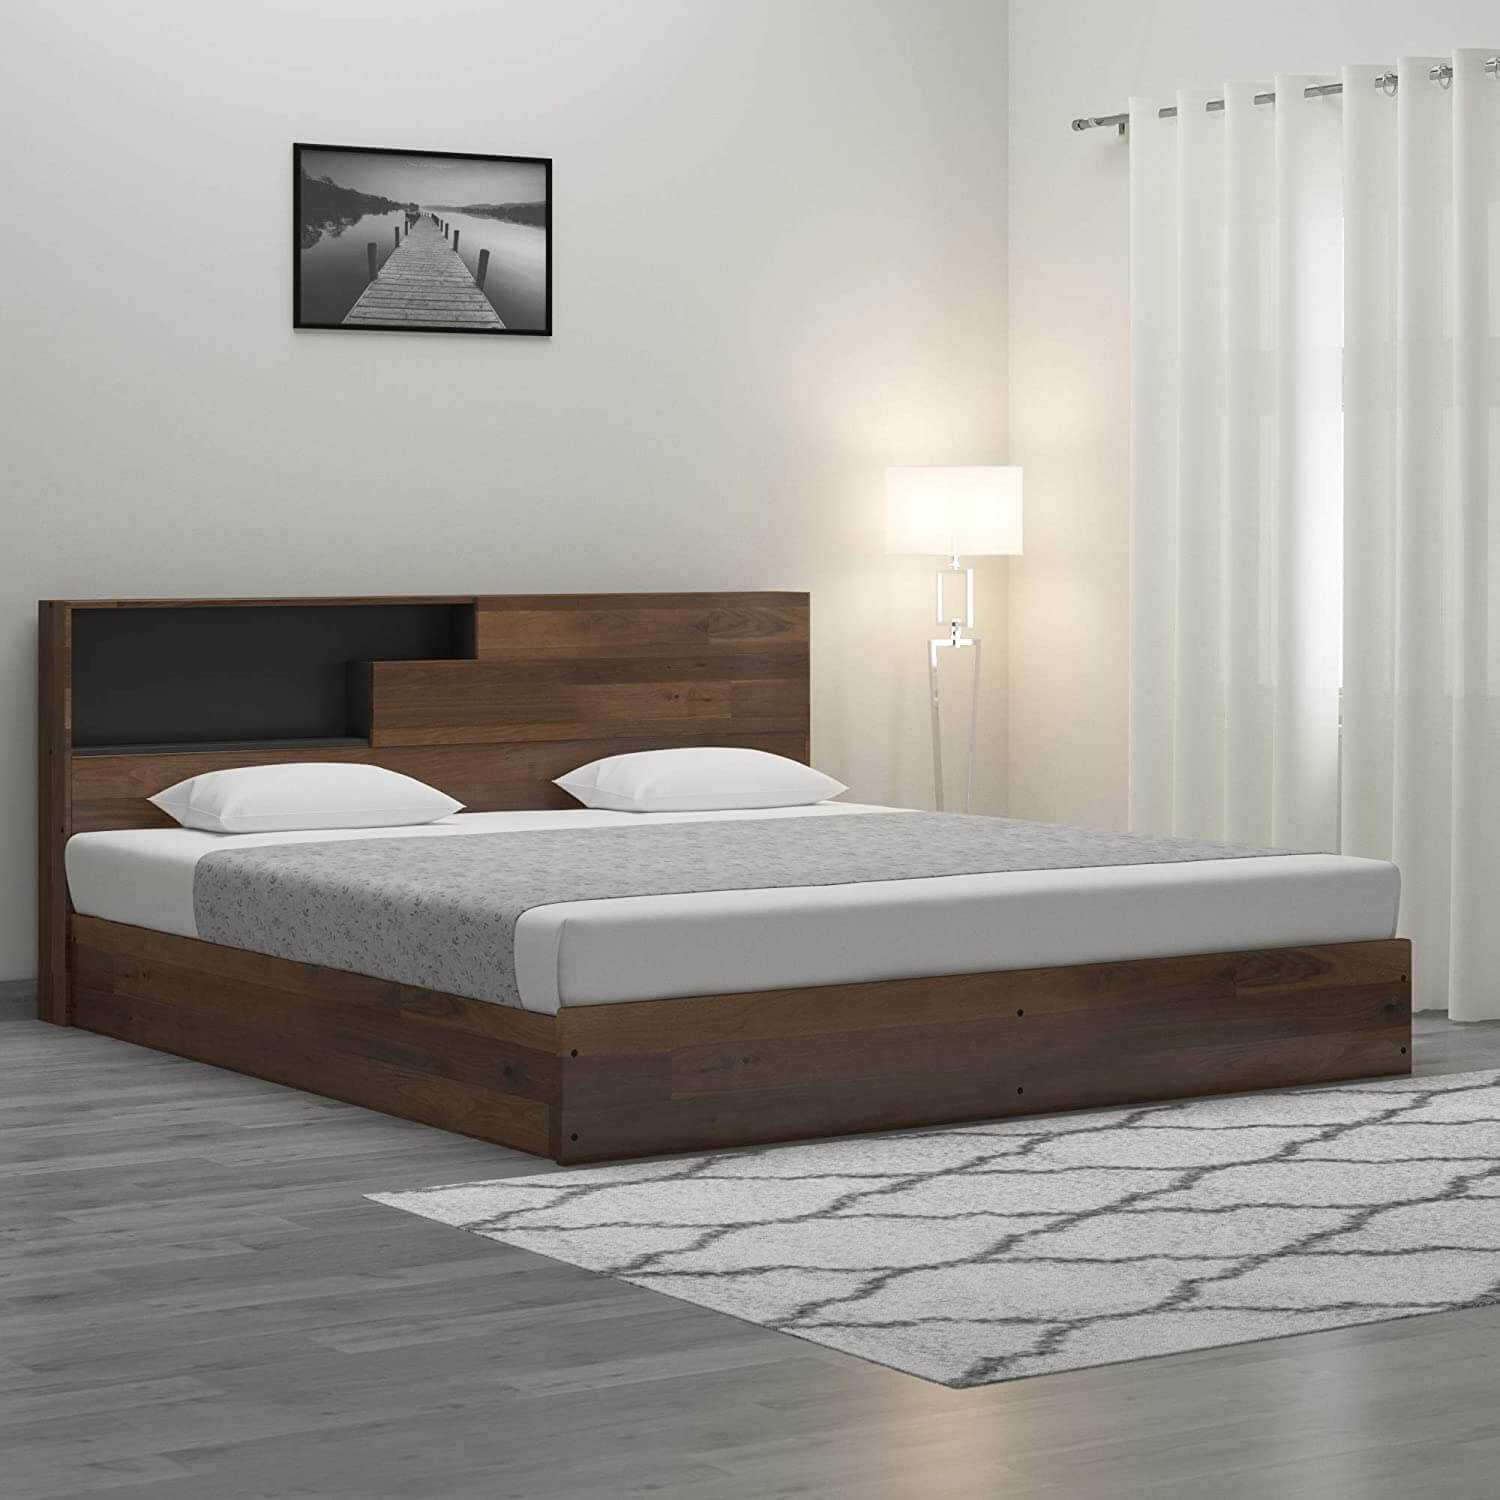 LAMINATED WOOD BED FRAME DESIGN IDEAS